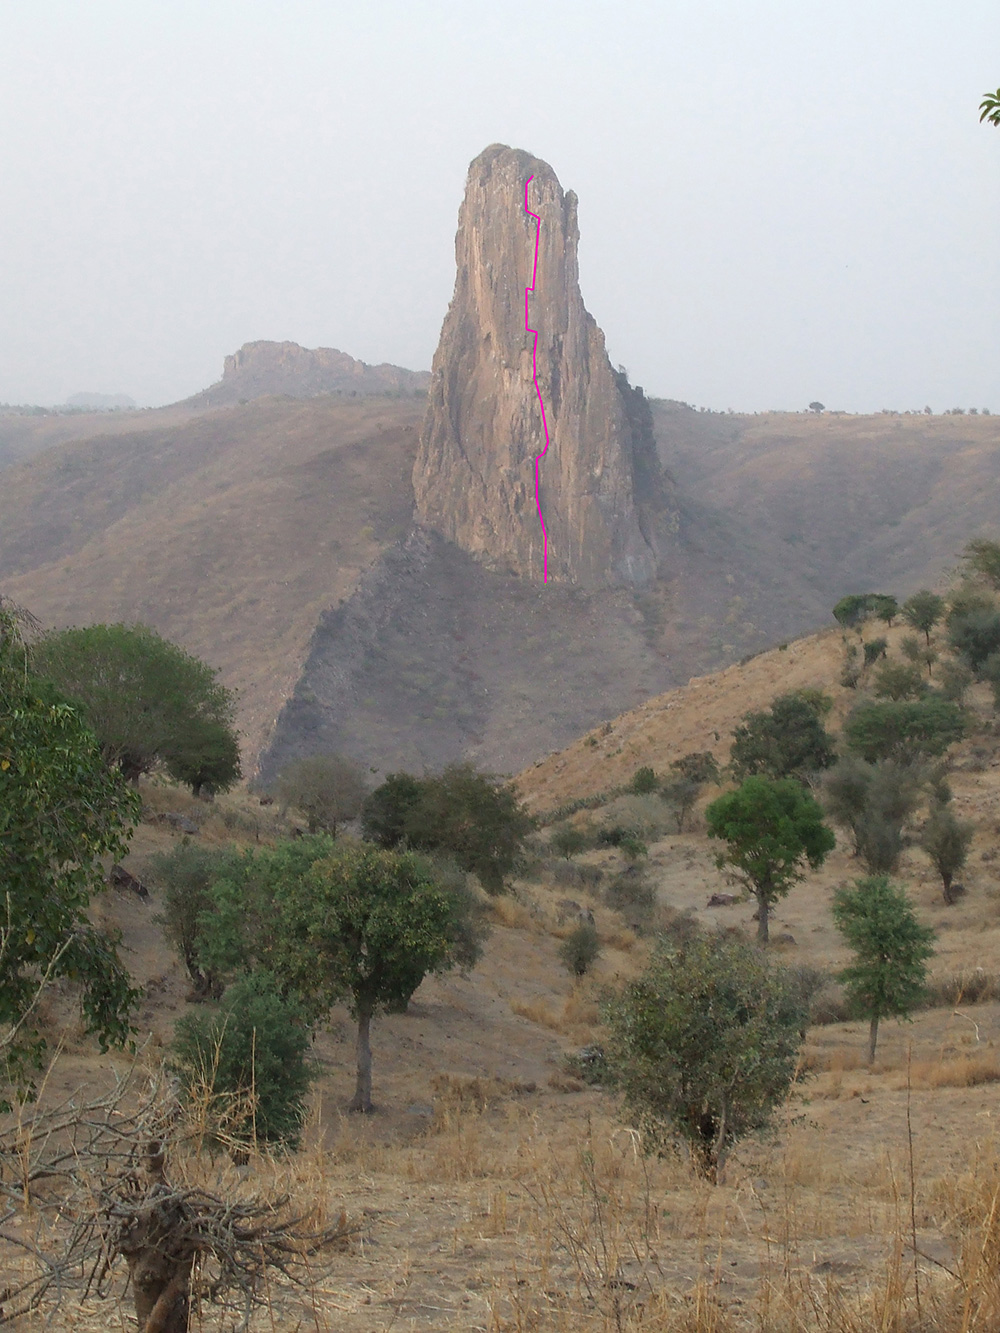 If you want to go climbing in Cameroon, check out Rhumsiki Tower.